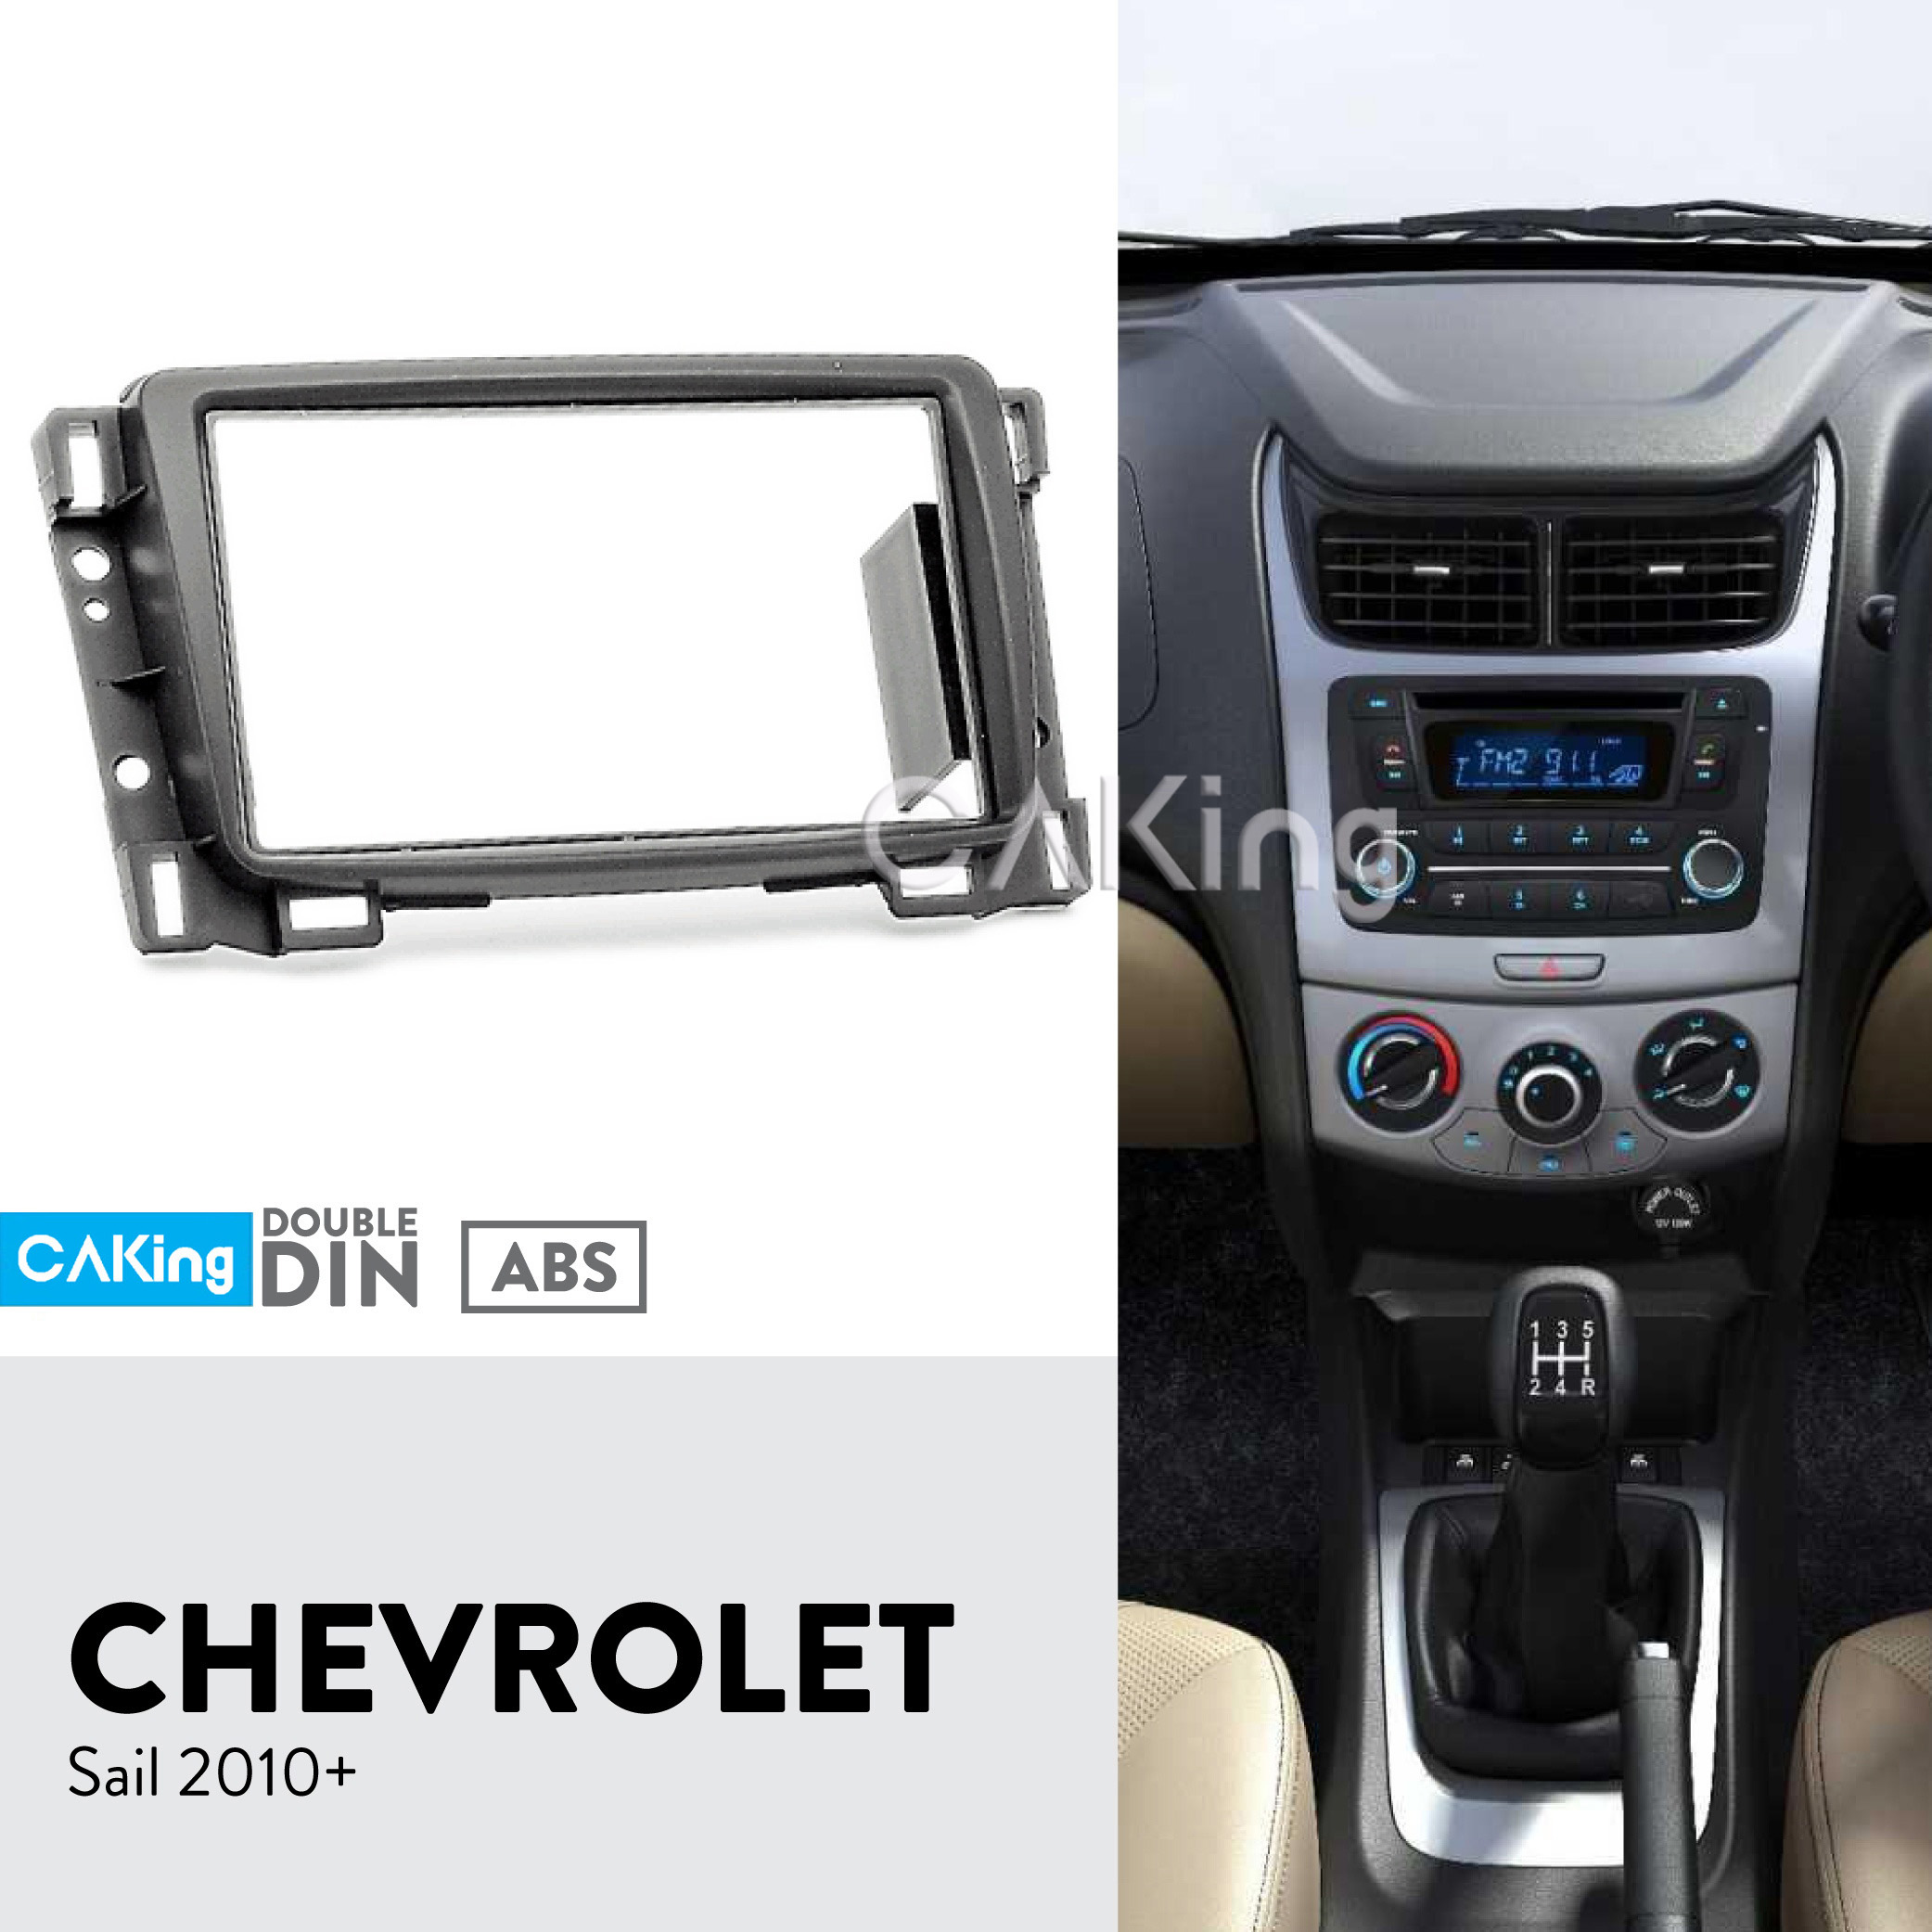 Double Din Fascia Radio Panel For CHEVROLET Sail 2010+ Audio Frame Dash Fitting Kit Facia Face Plate Adapter Cover Front Bezel